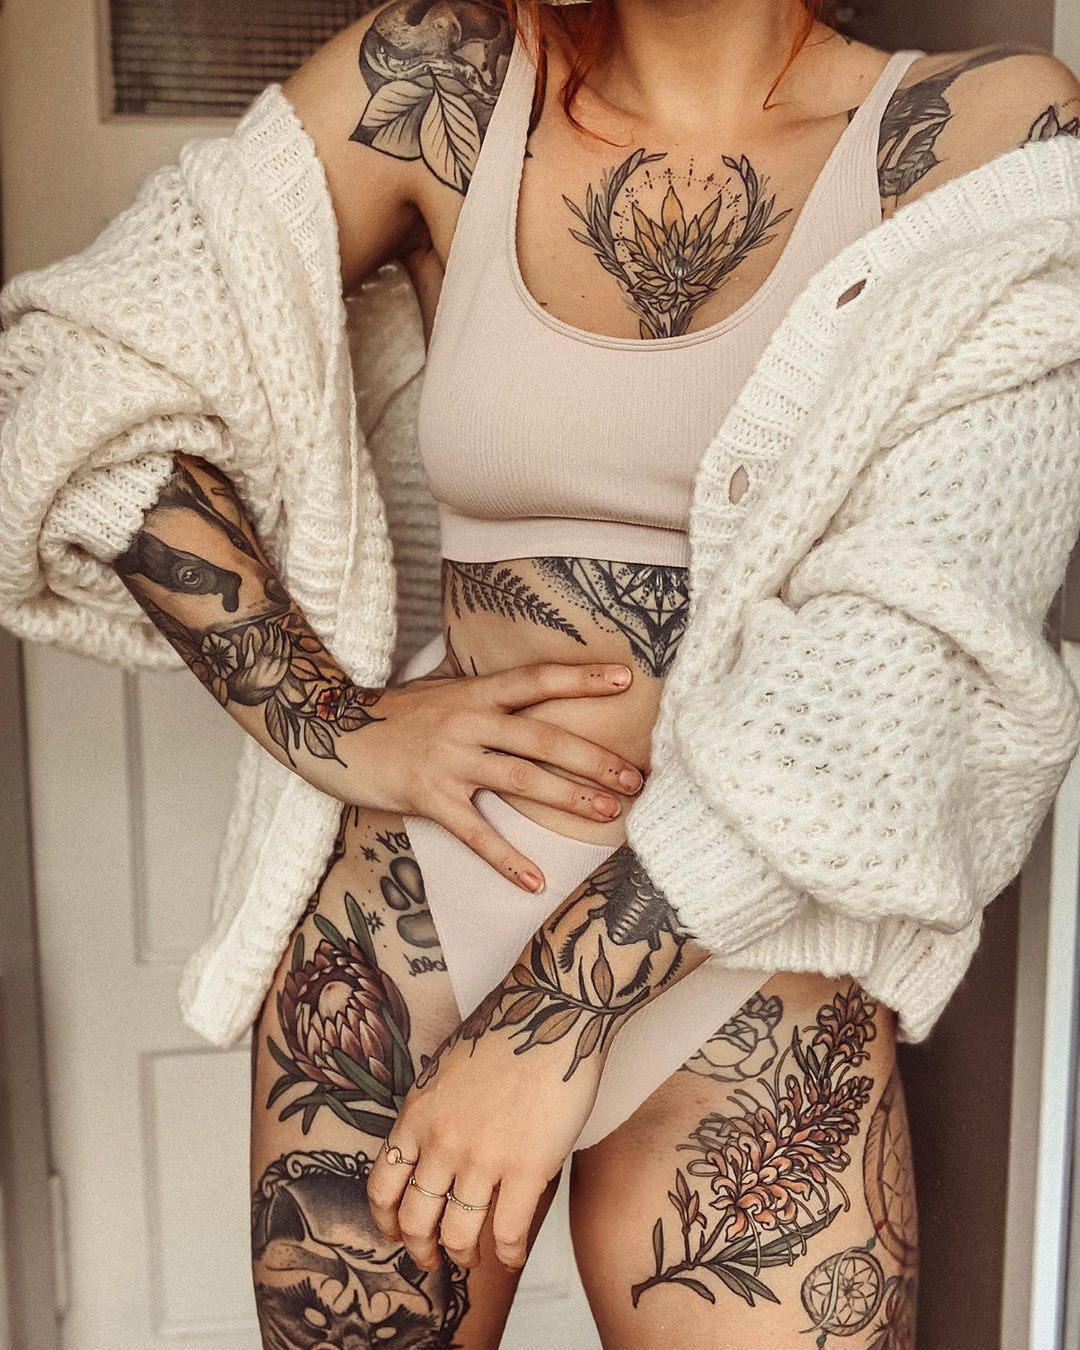 "Photo of Jule Popule on Instagram: ""Cardigan & underwear – a classic ❤️ # tattoo # inspo # ink"""